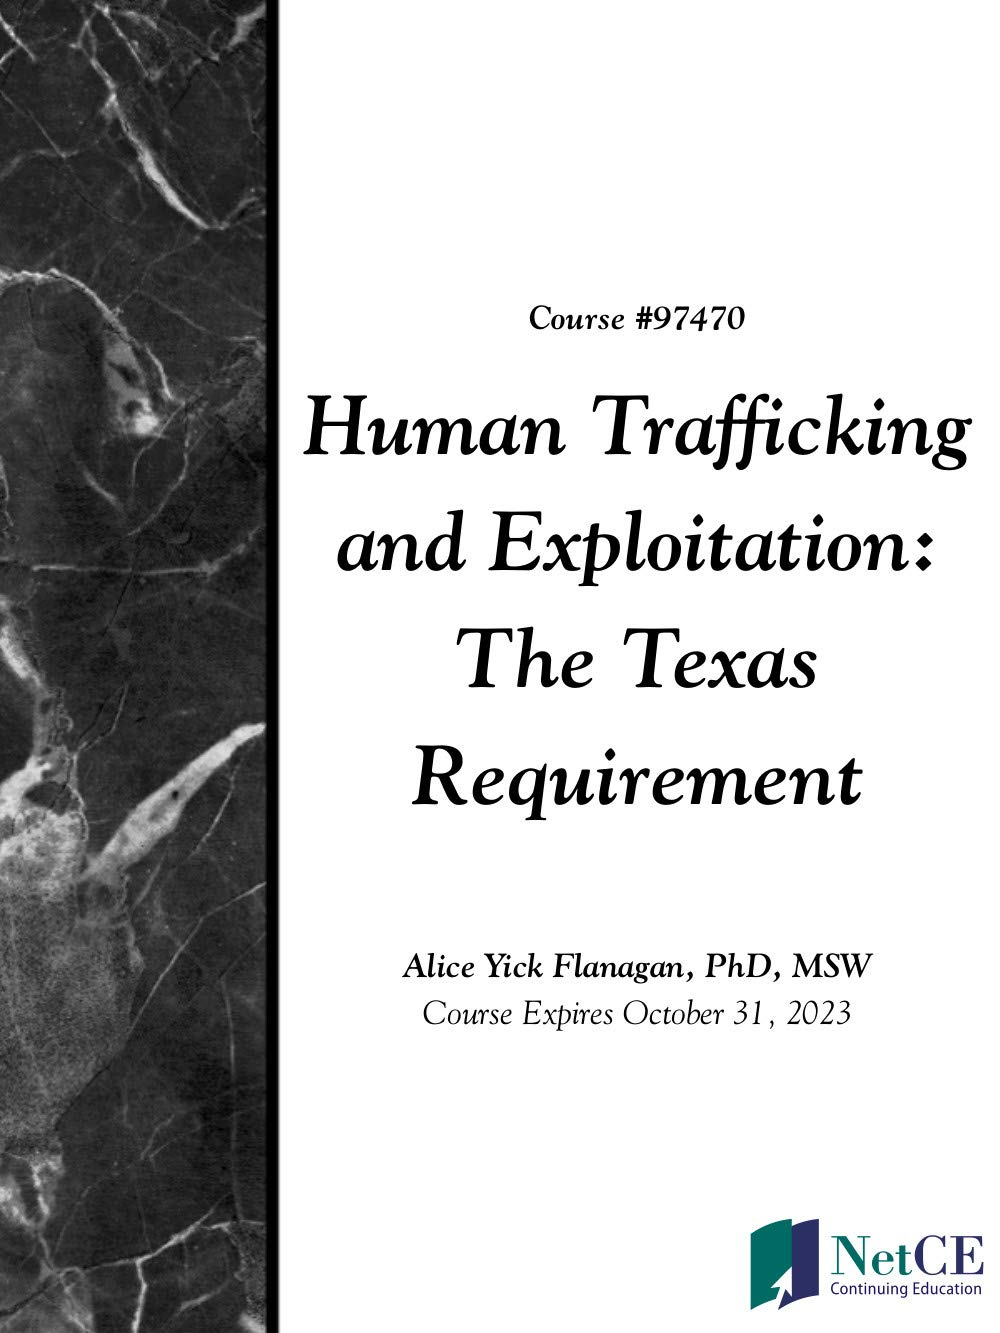 Human Trafficking and Exploitation: The Texas Requirement